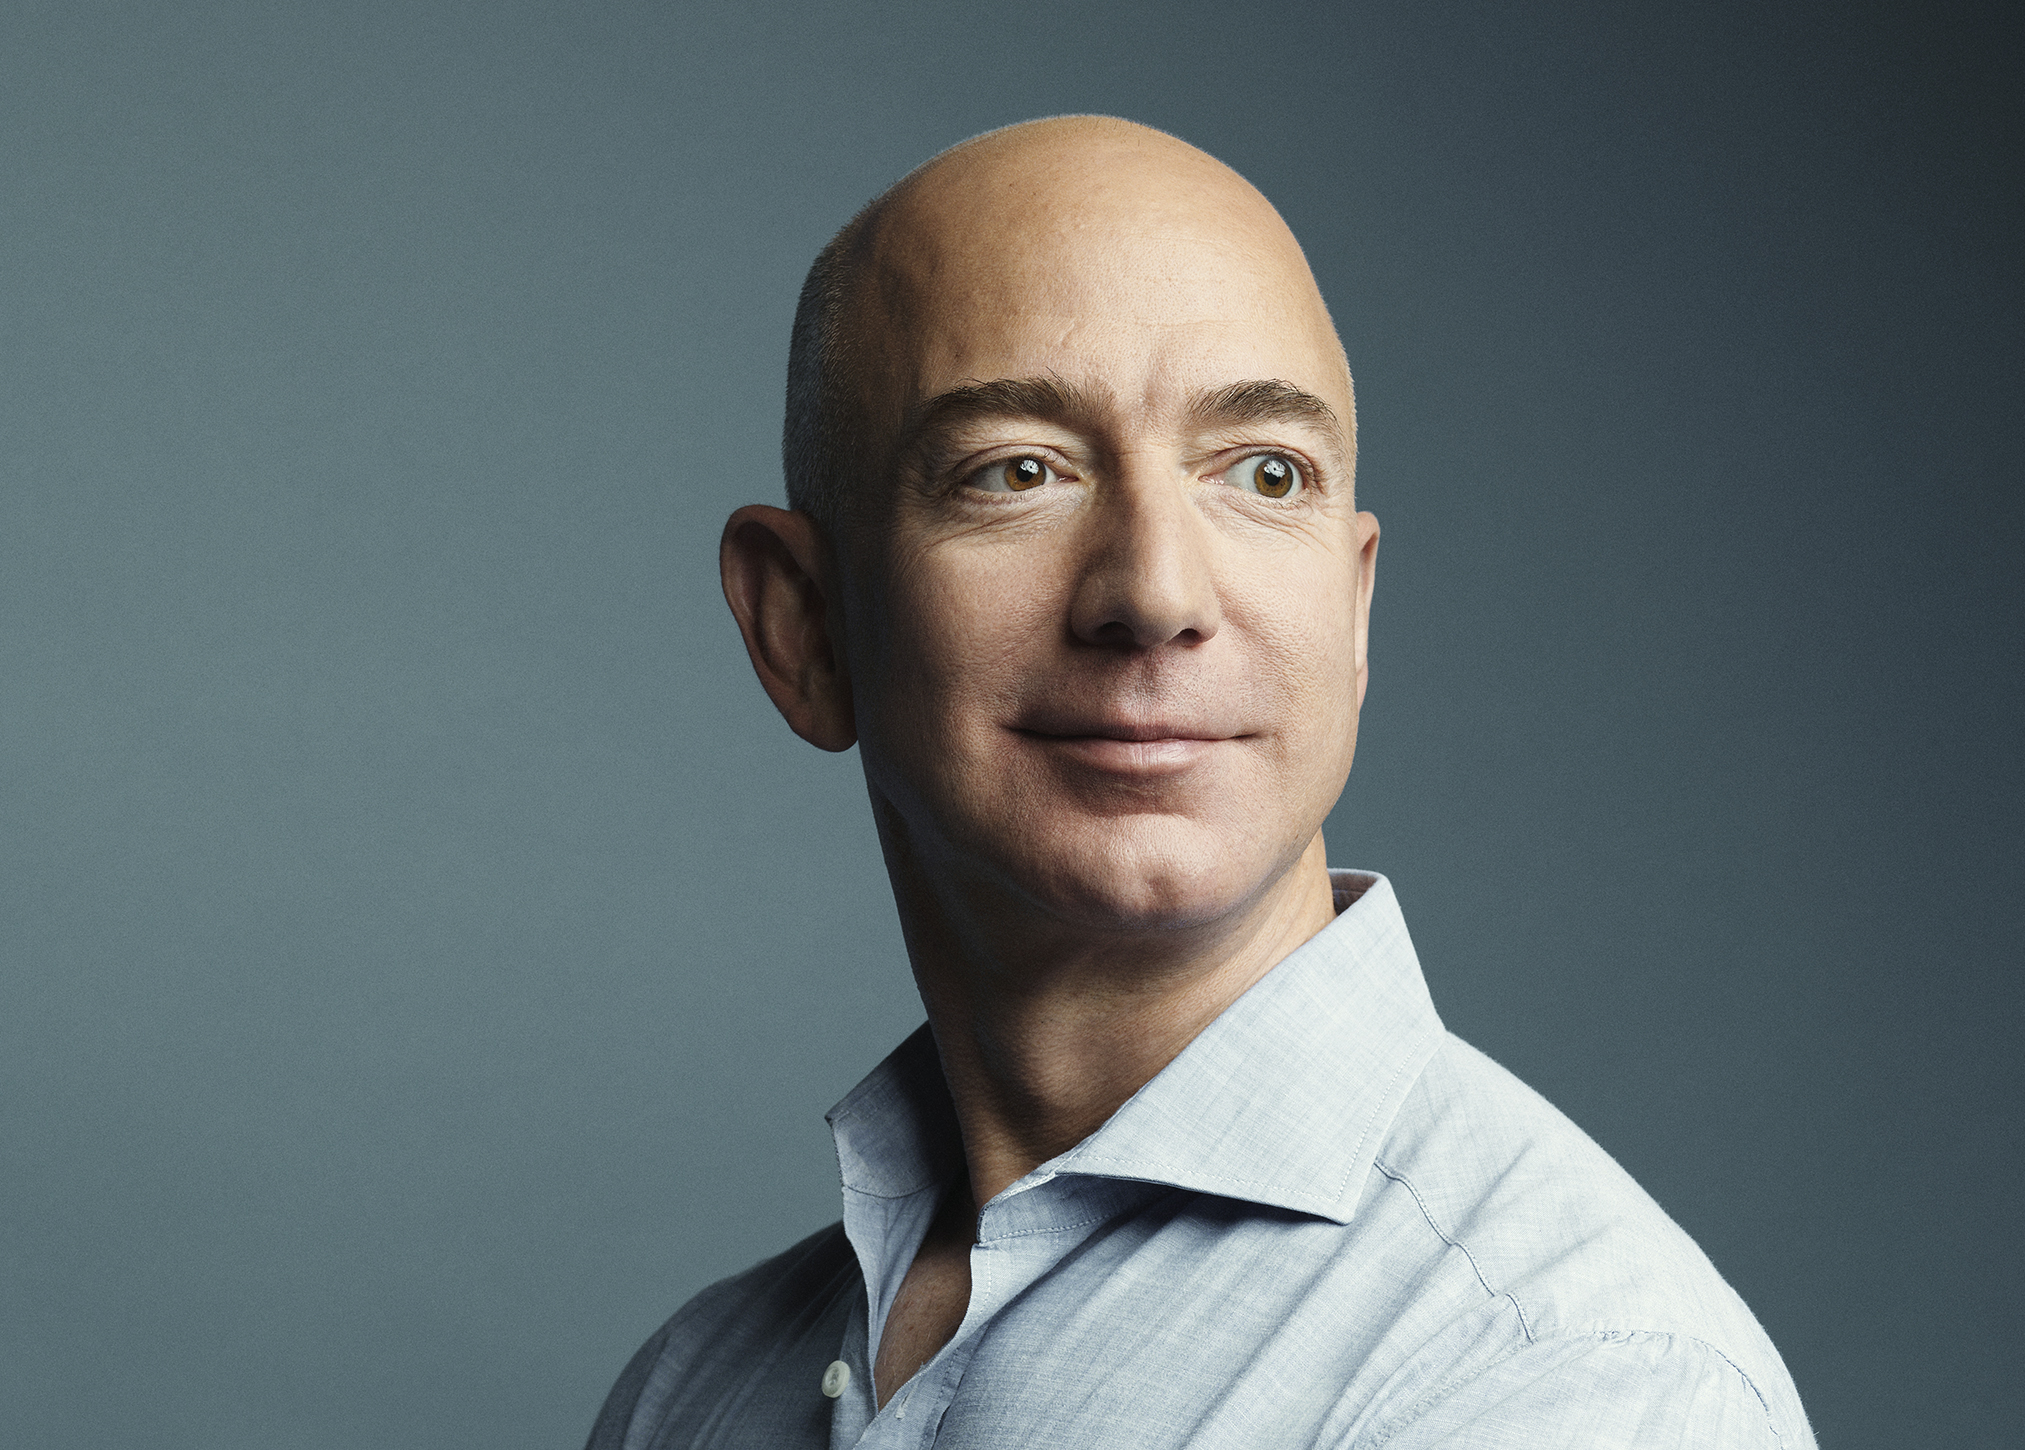 Jeff Bezos, photographed at Amazon headquarters in Seattle on March 11, 2016.